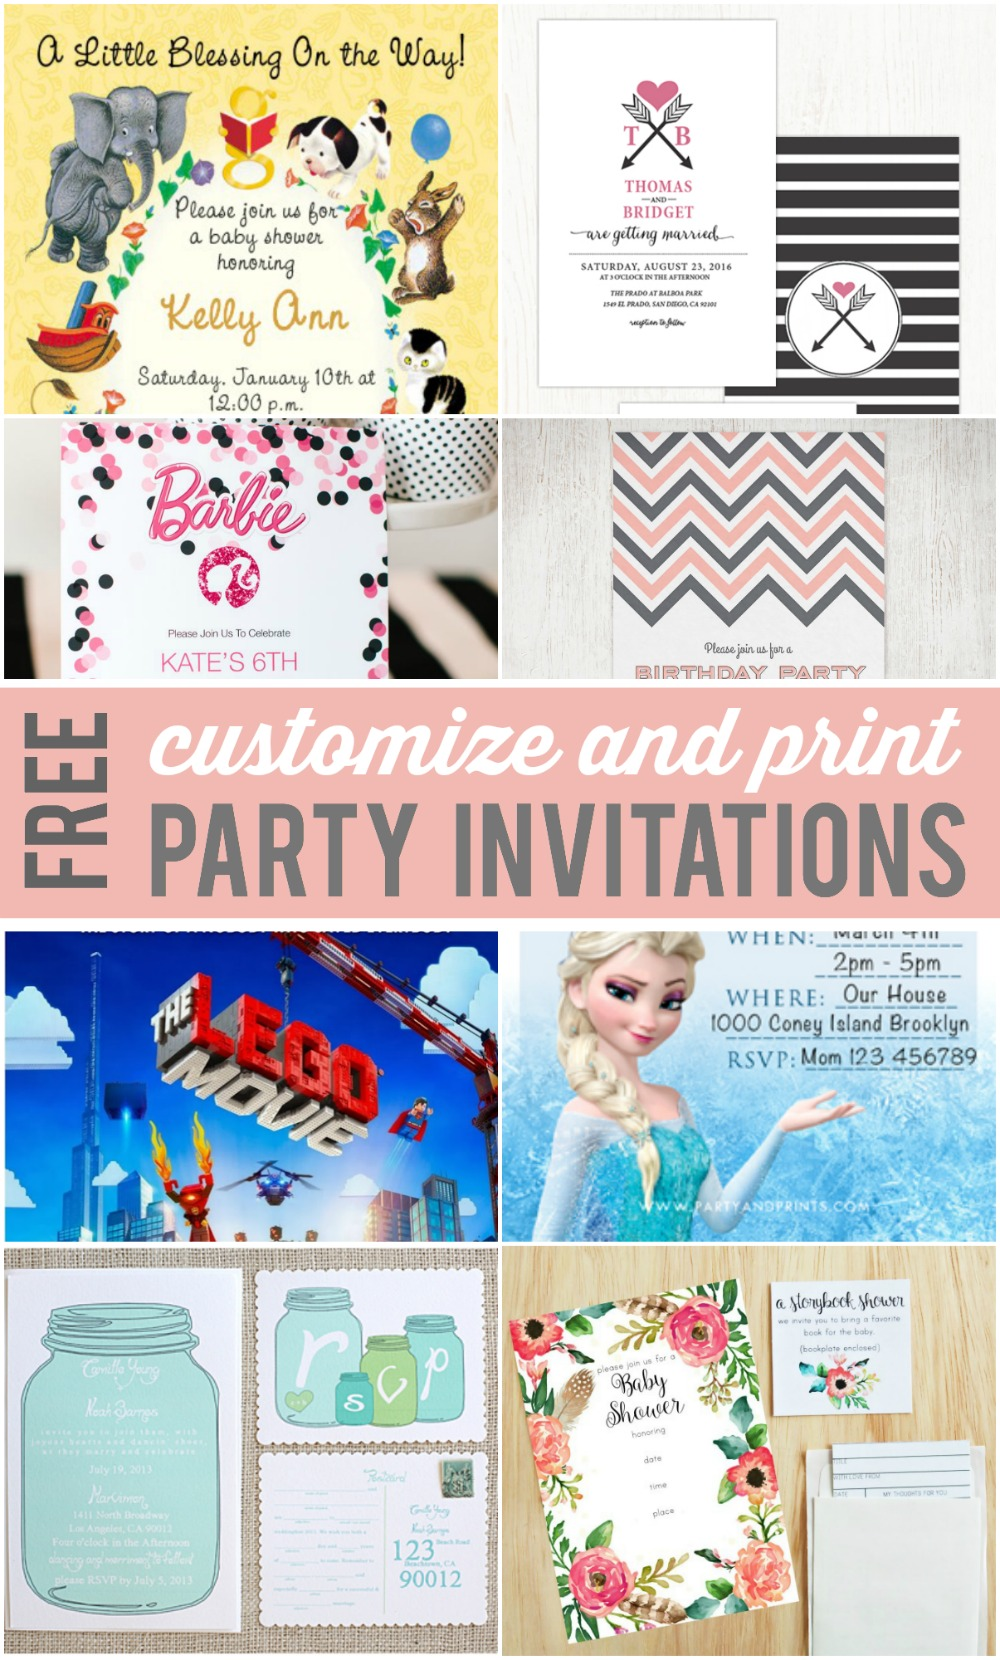 Customizable Party Invitations - REASONS TO SKIP THE HOUSEWORK